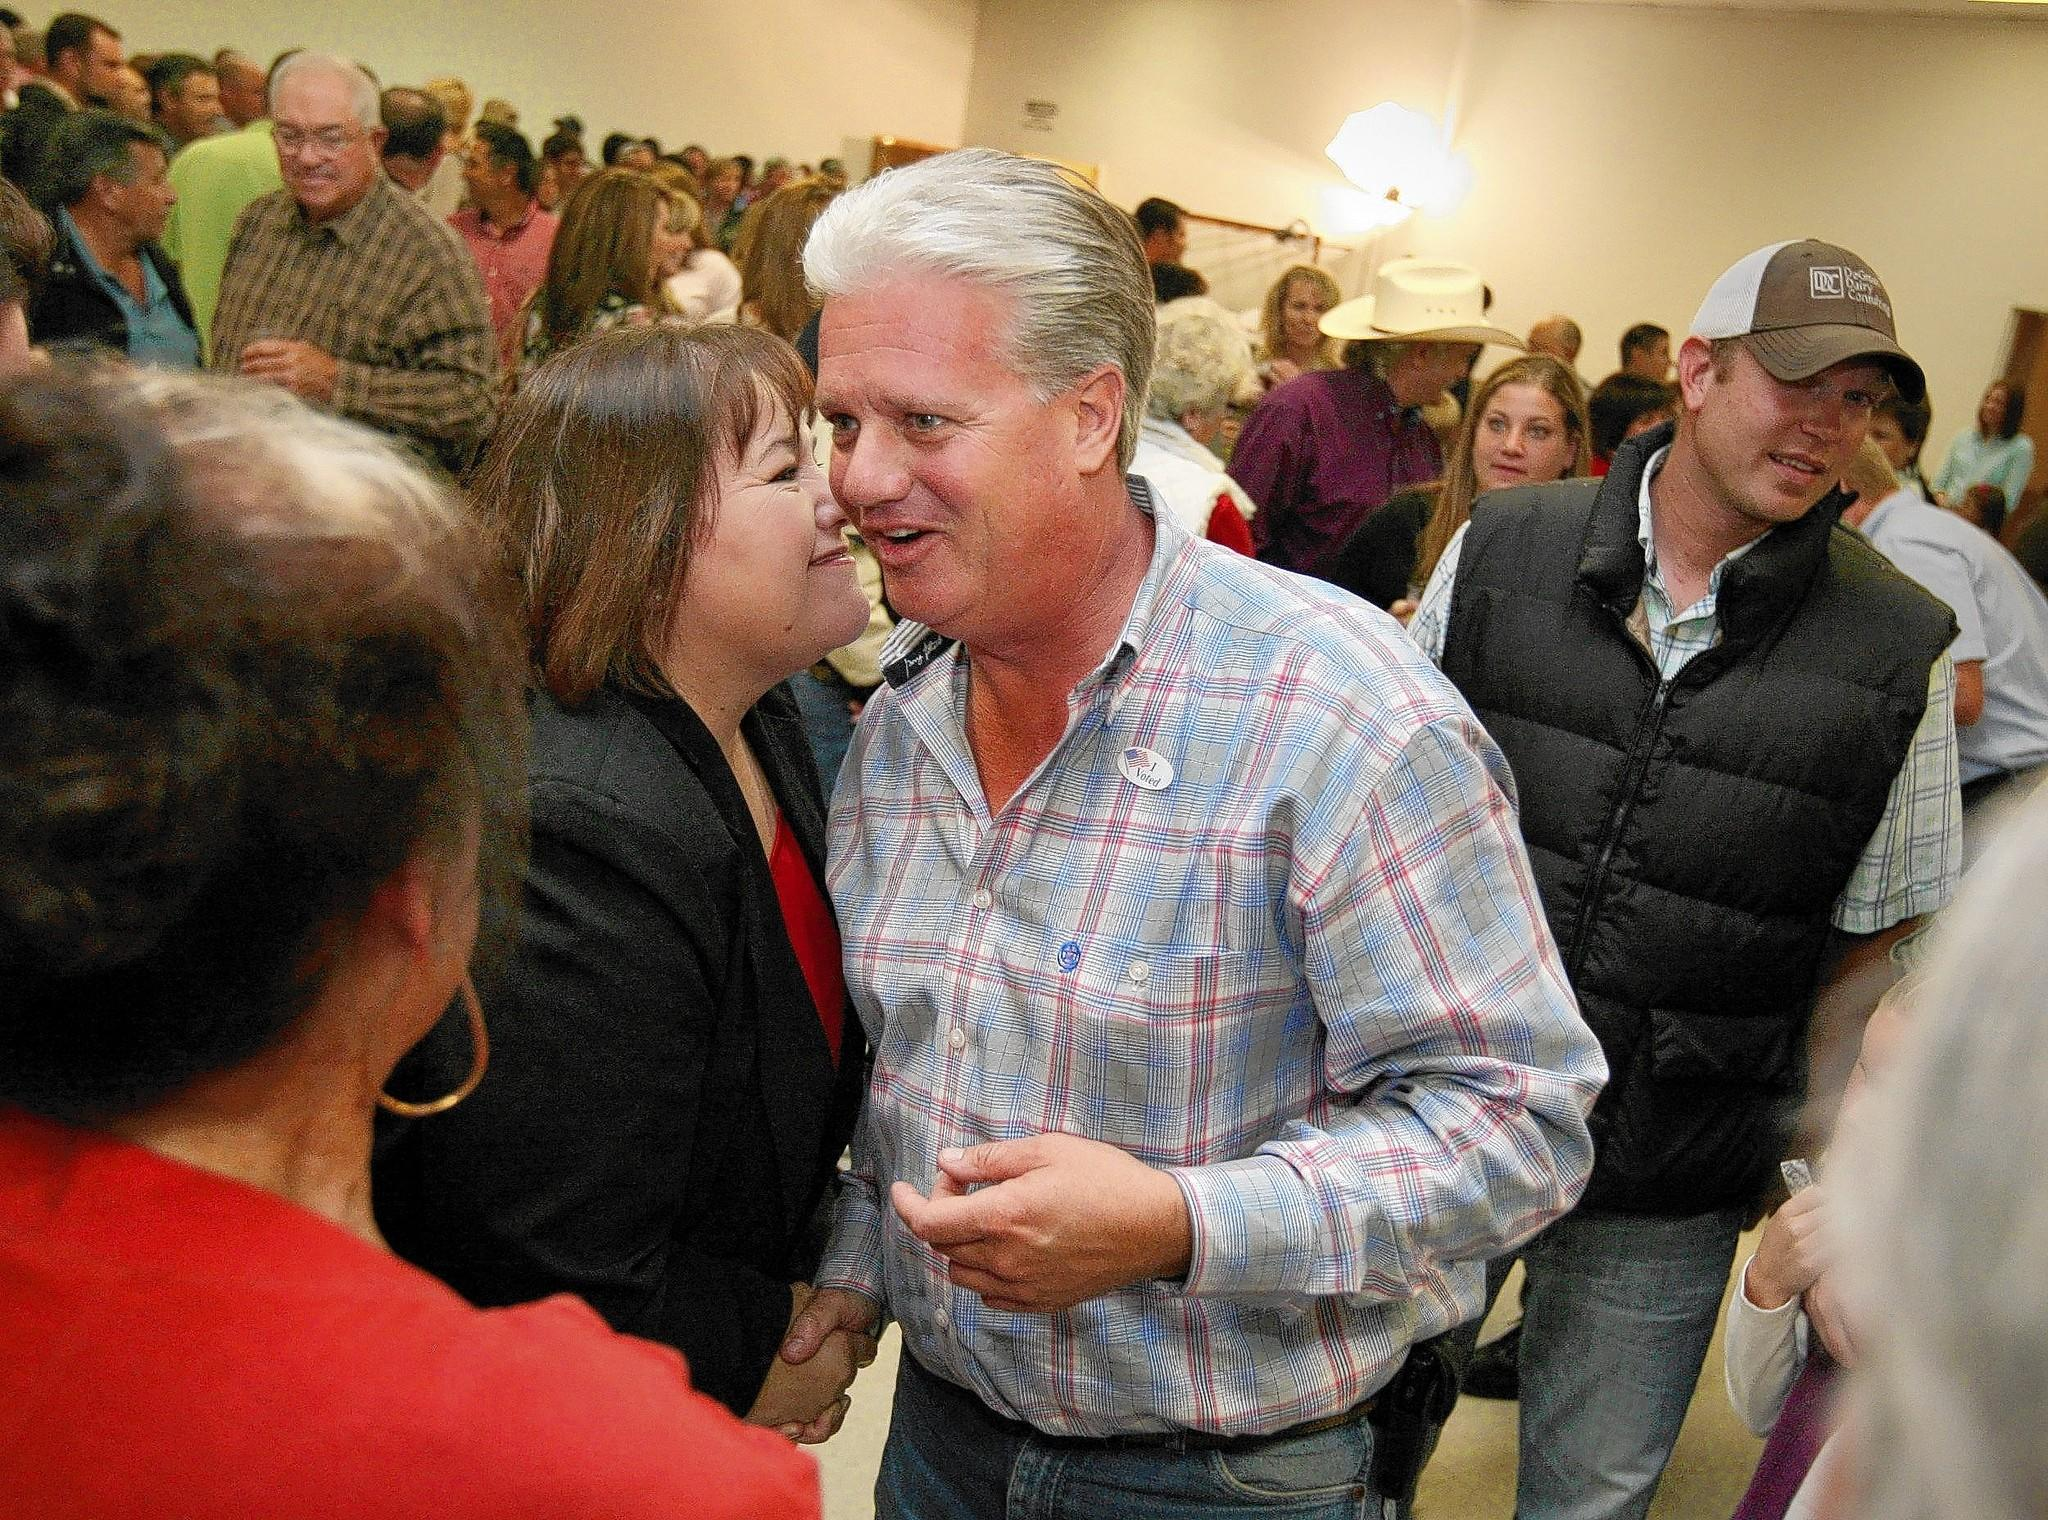 Andy Vidak, shown in 2010, scored an upset victory last year in a Senate district where Democrats have a 22-point advantage in voter registration. He sidestepped gay marriage and some other divisive issues while taking a moderate approach to immigration.